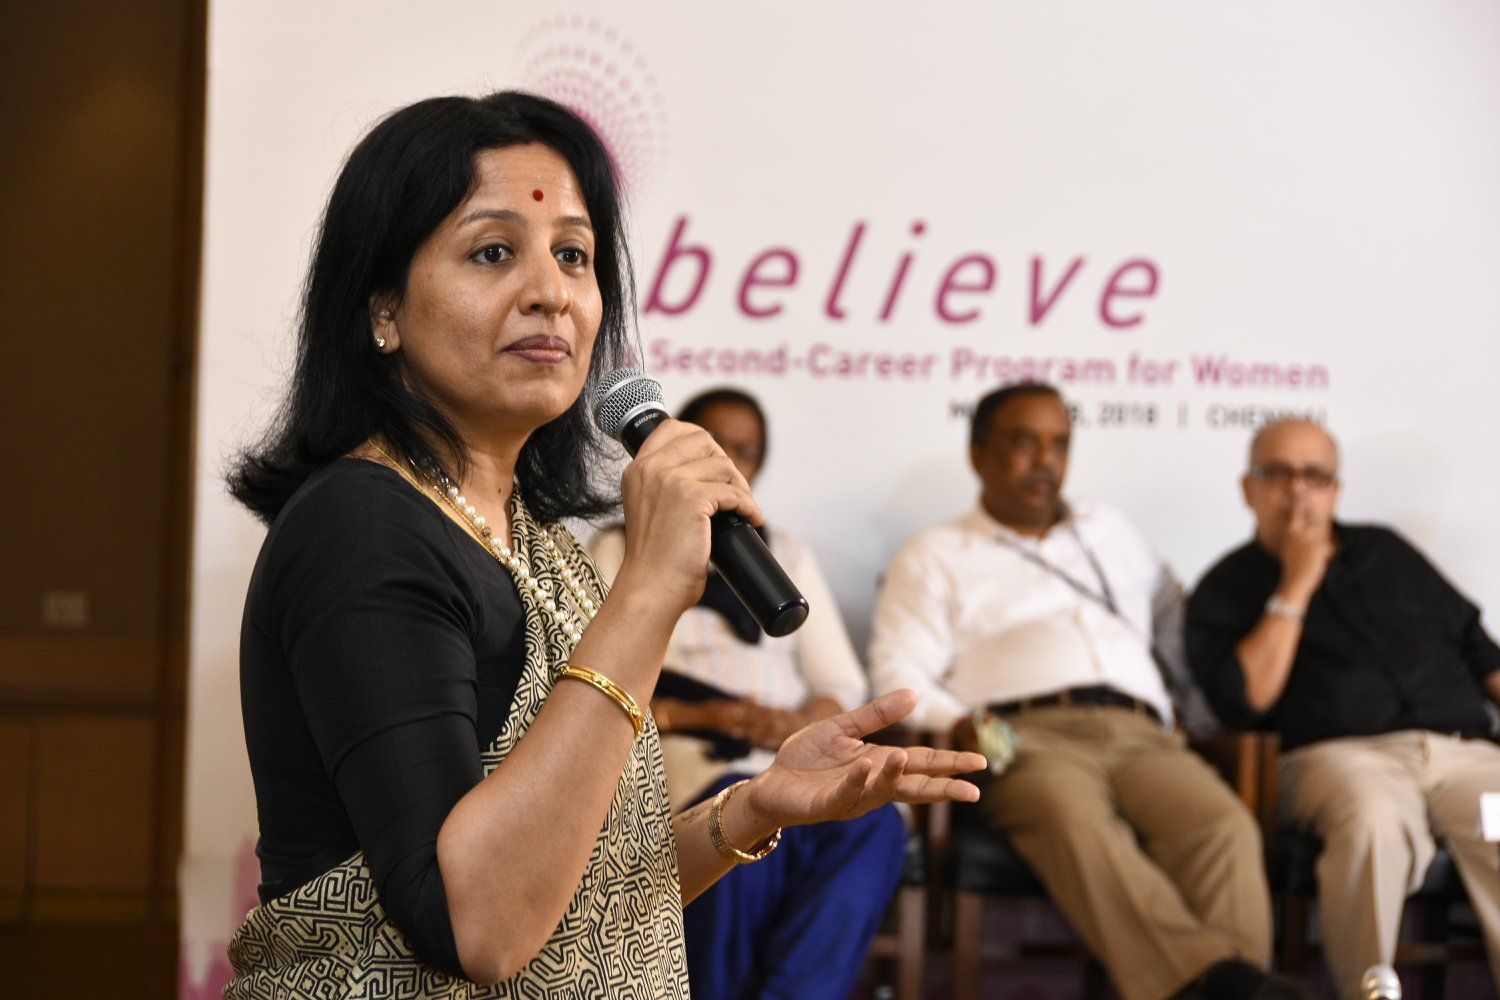 hcl-s-ibelieve-program-launch-a-resounding-success-for-second-career-women